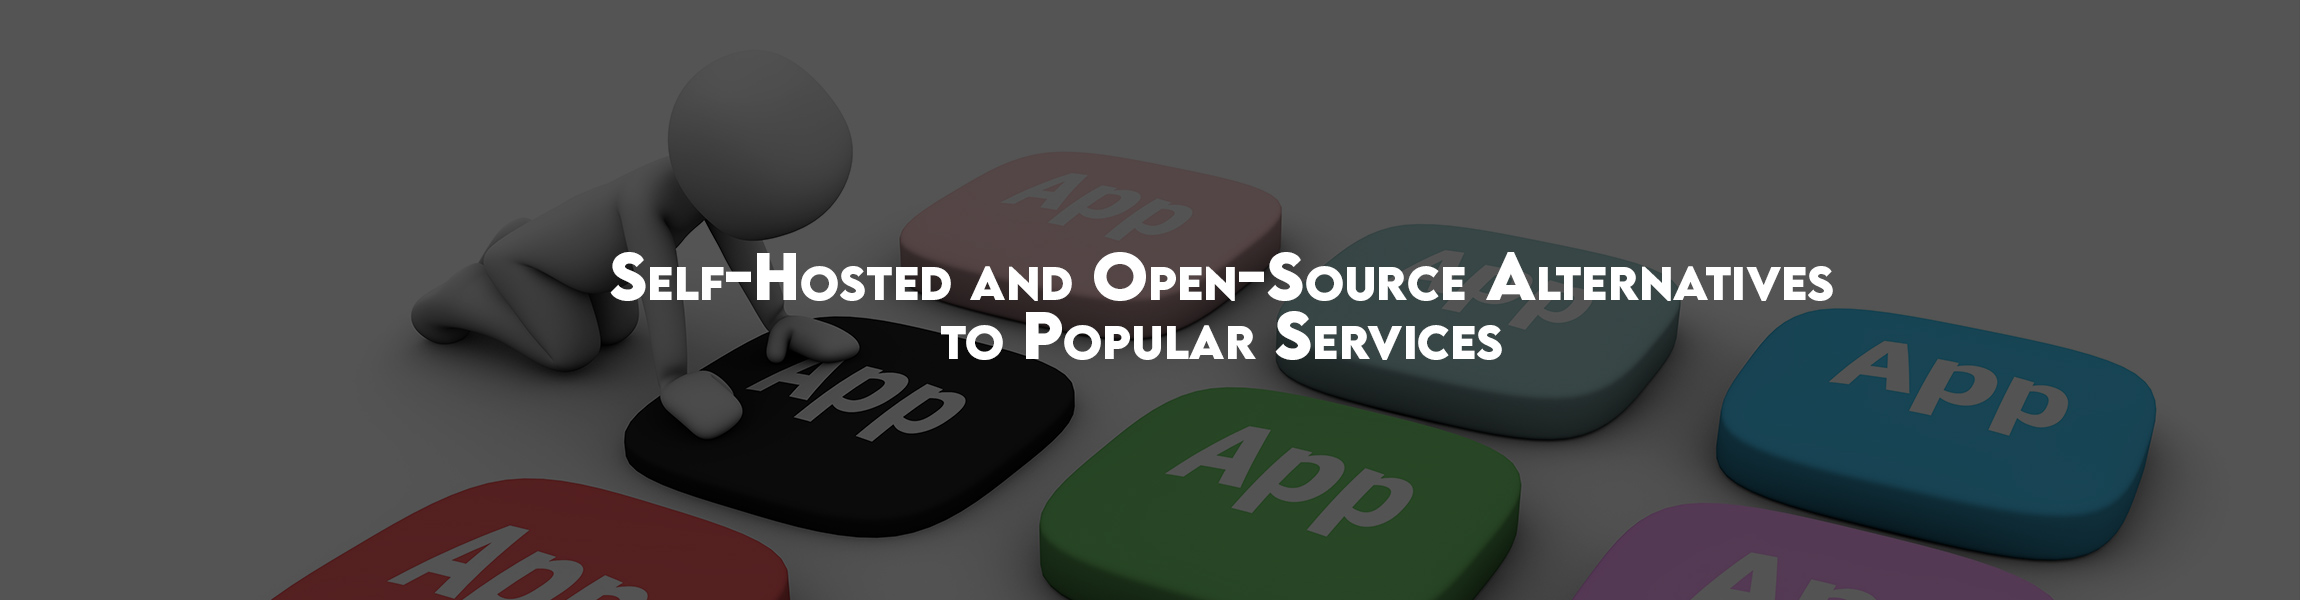 Self-Hosted and Open-Source Alternatives to Popular Services